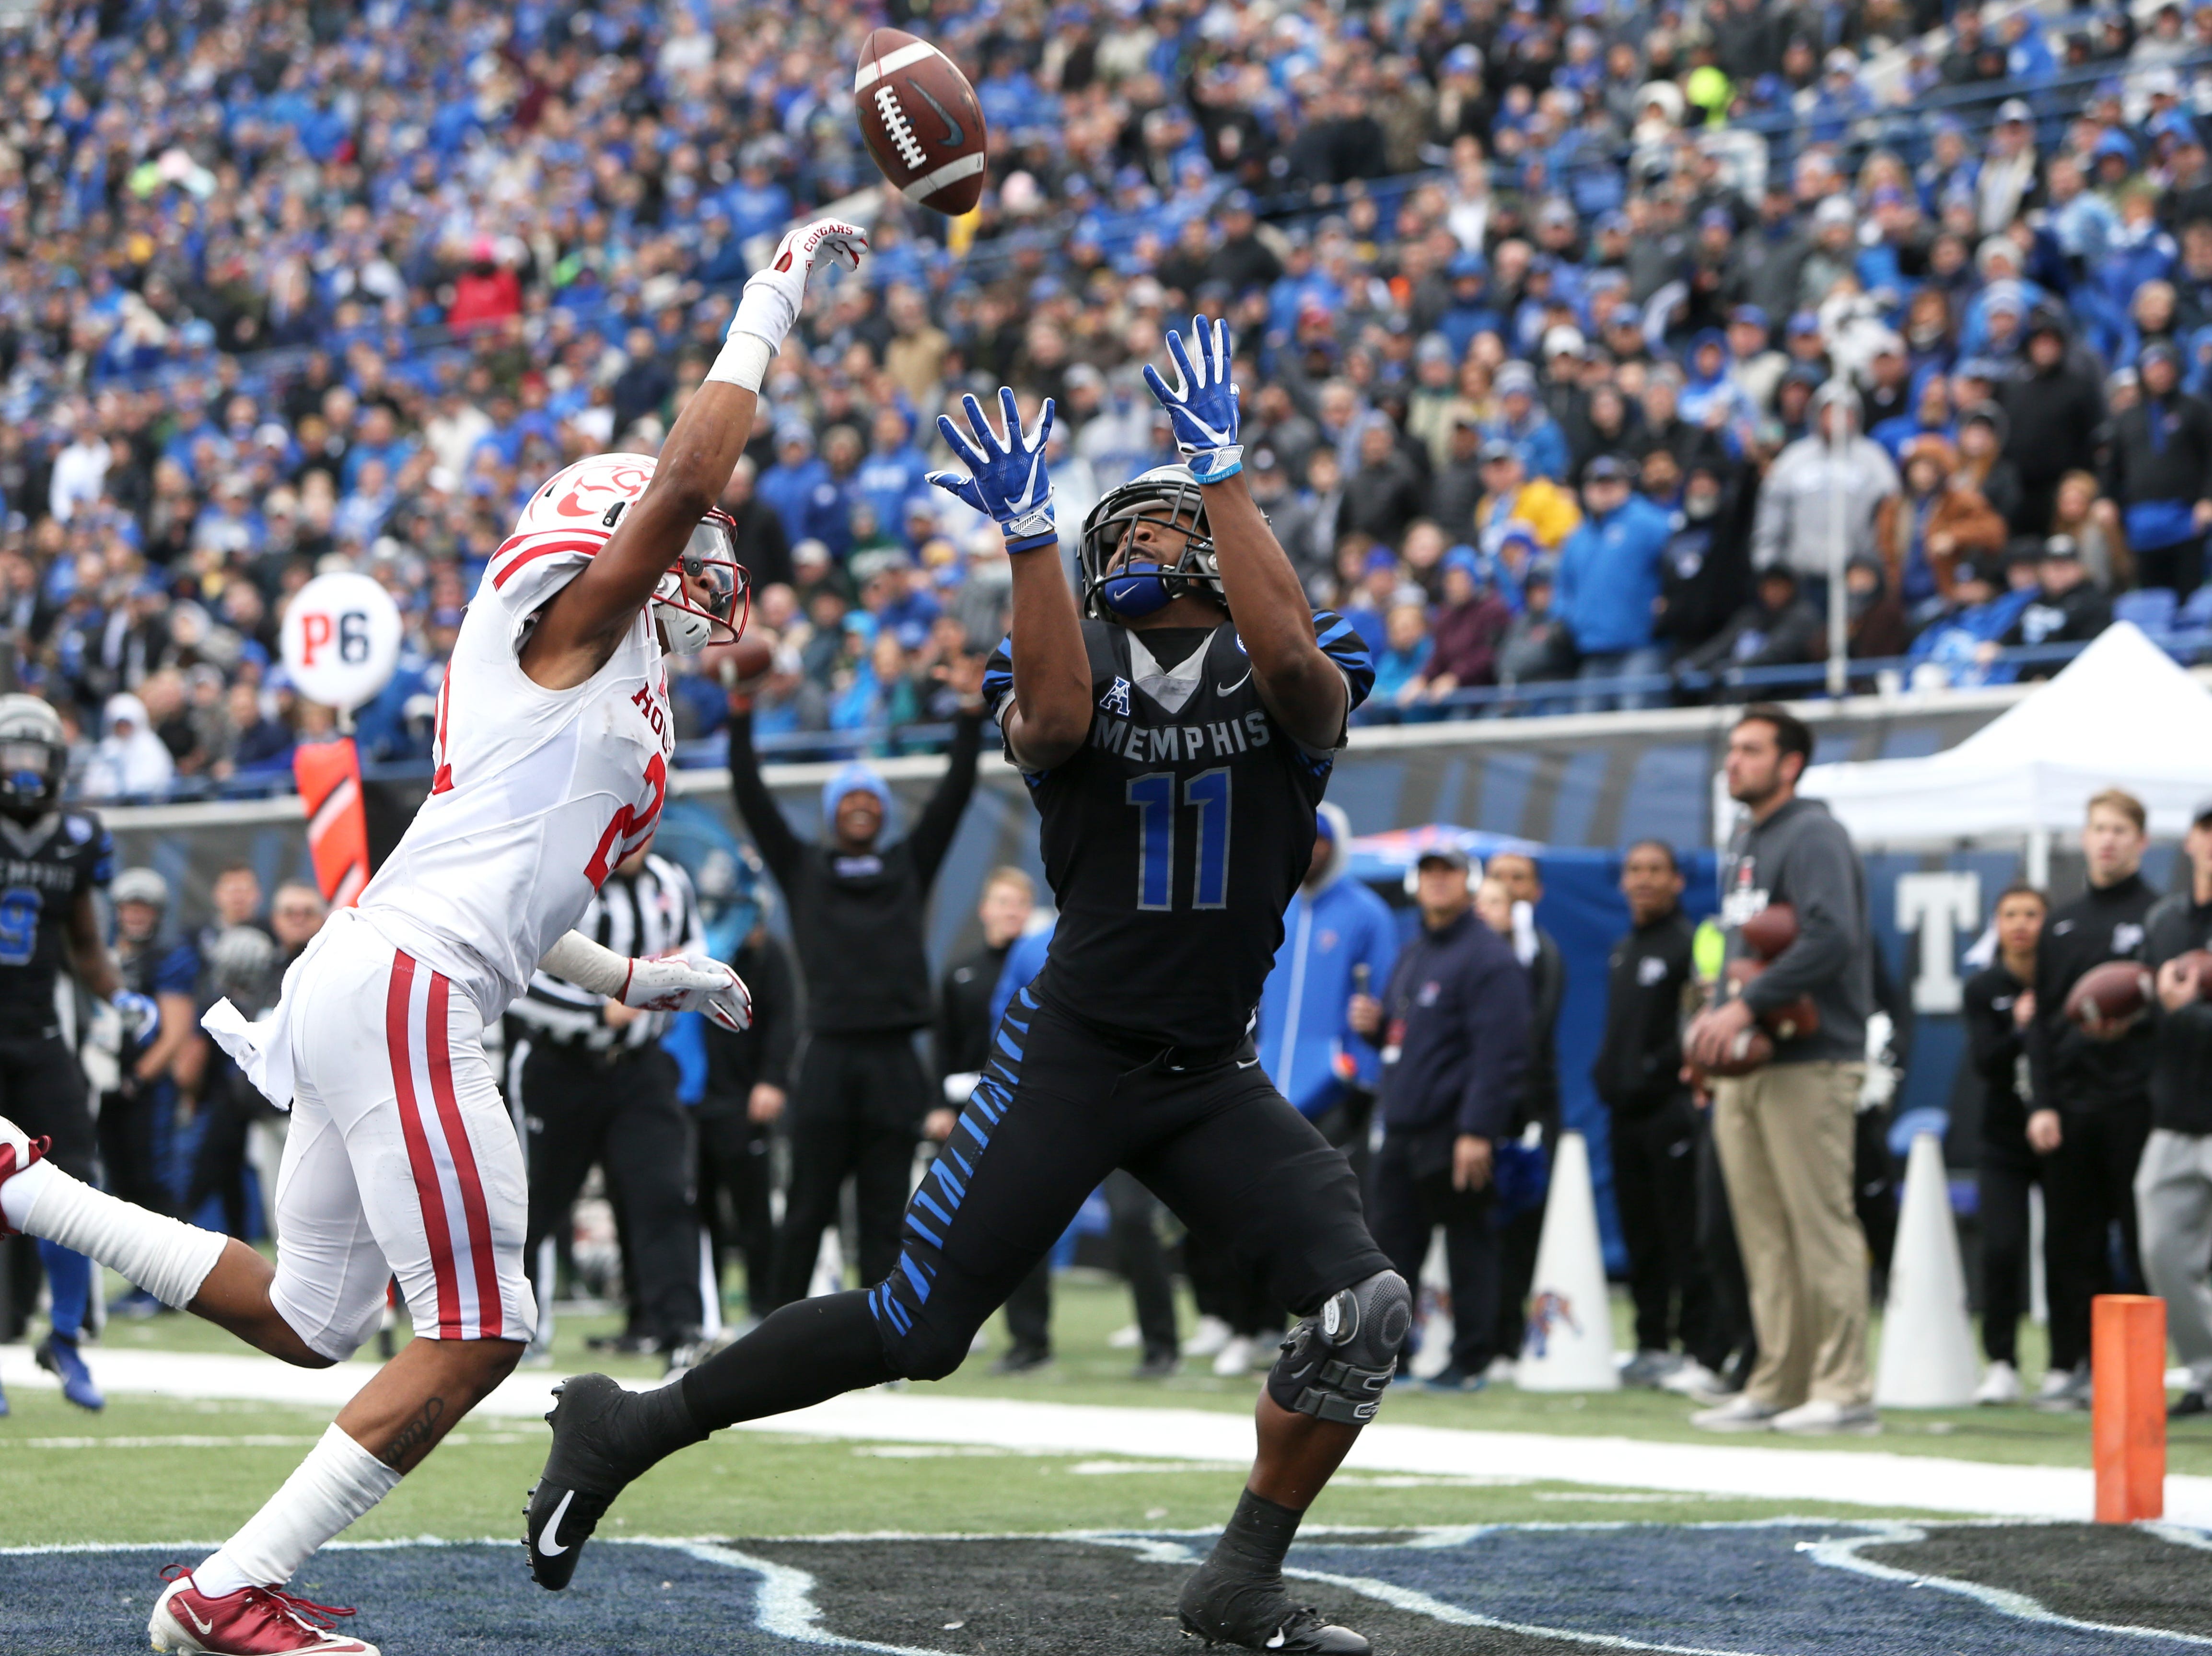 Memphis Tigers' Sam Craft tries to catch a touchdown pass, coming up just short in the endzone against Houston Cougars defender Gleson Sprewell at the Liberty Bowl Memorial Stadium on Friday, Nov. 23, 2018.